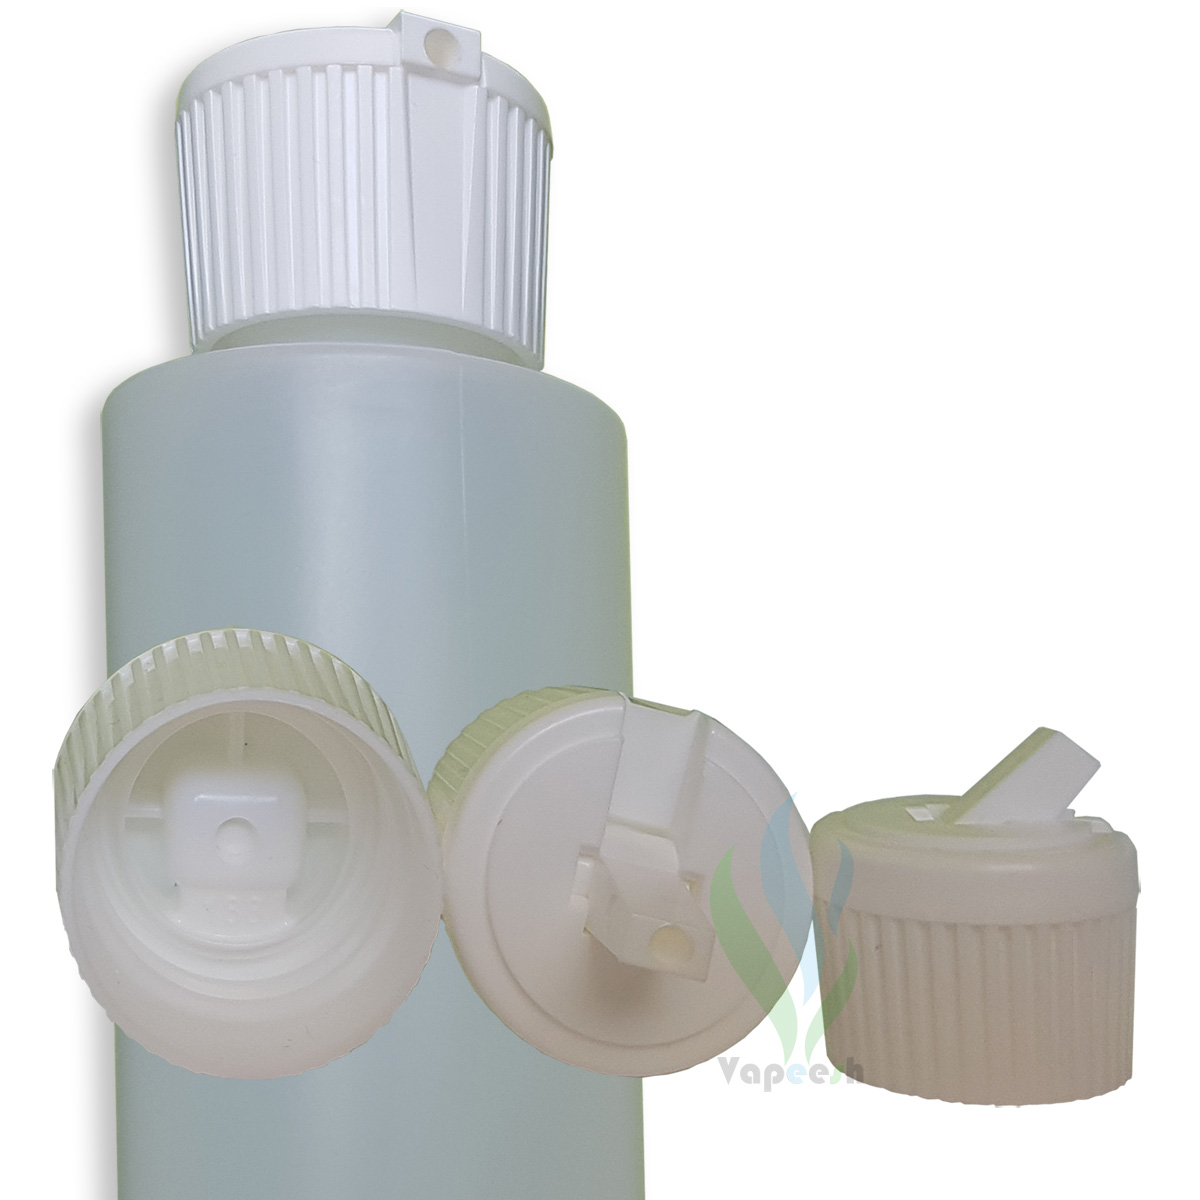 HDPE natural cylinderical bottle with white flip-spout closure & 3 white turret closures